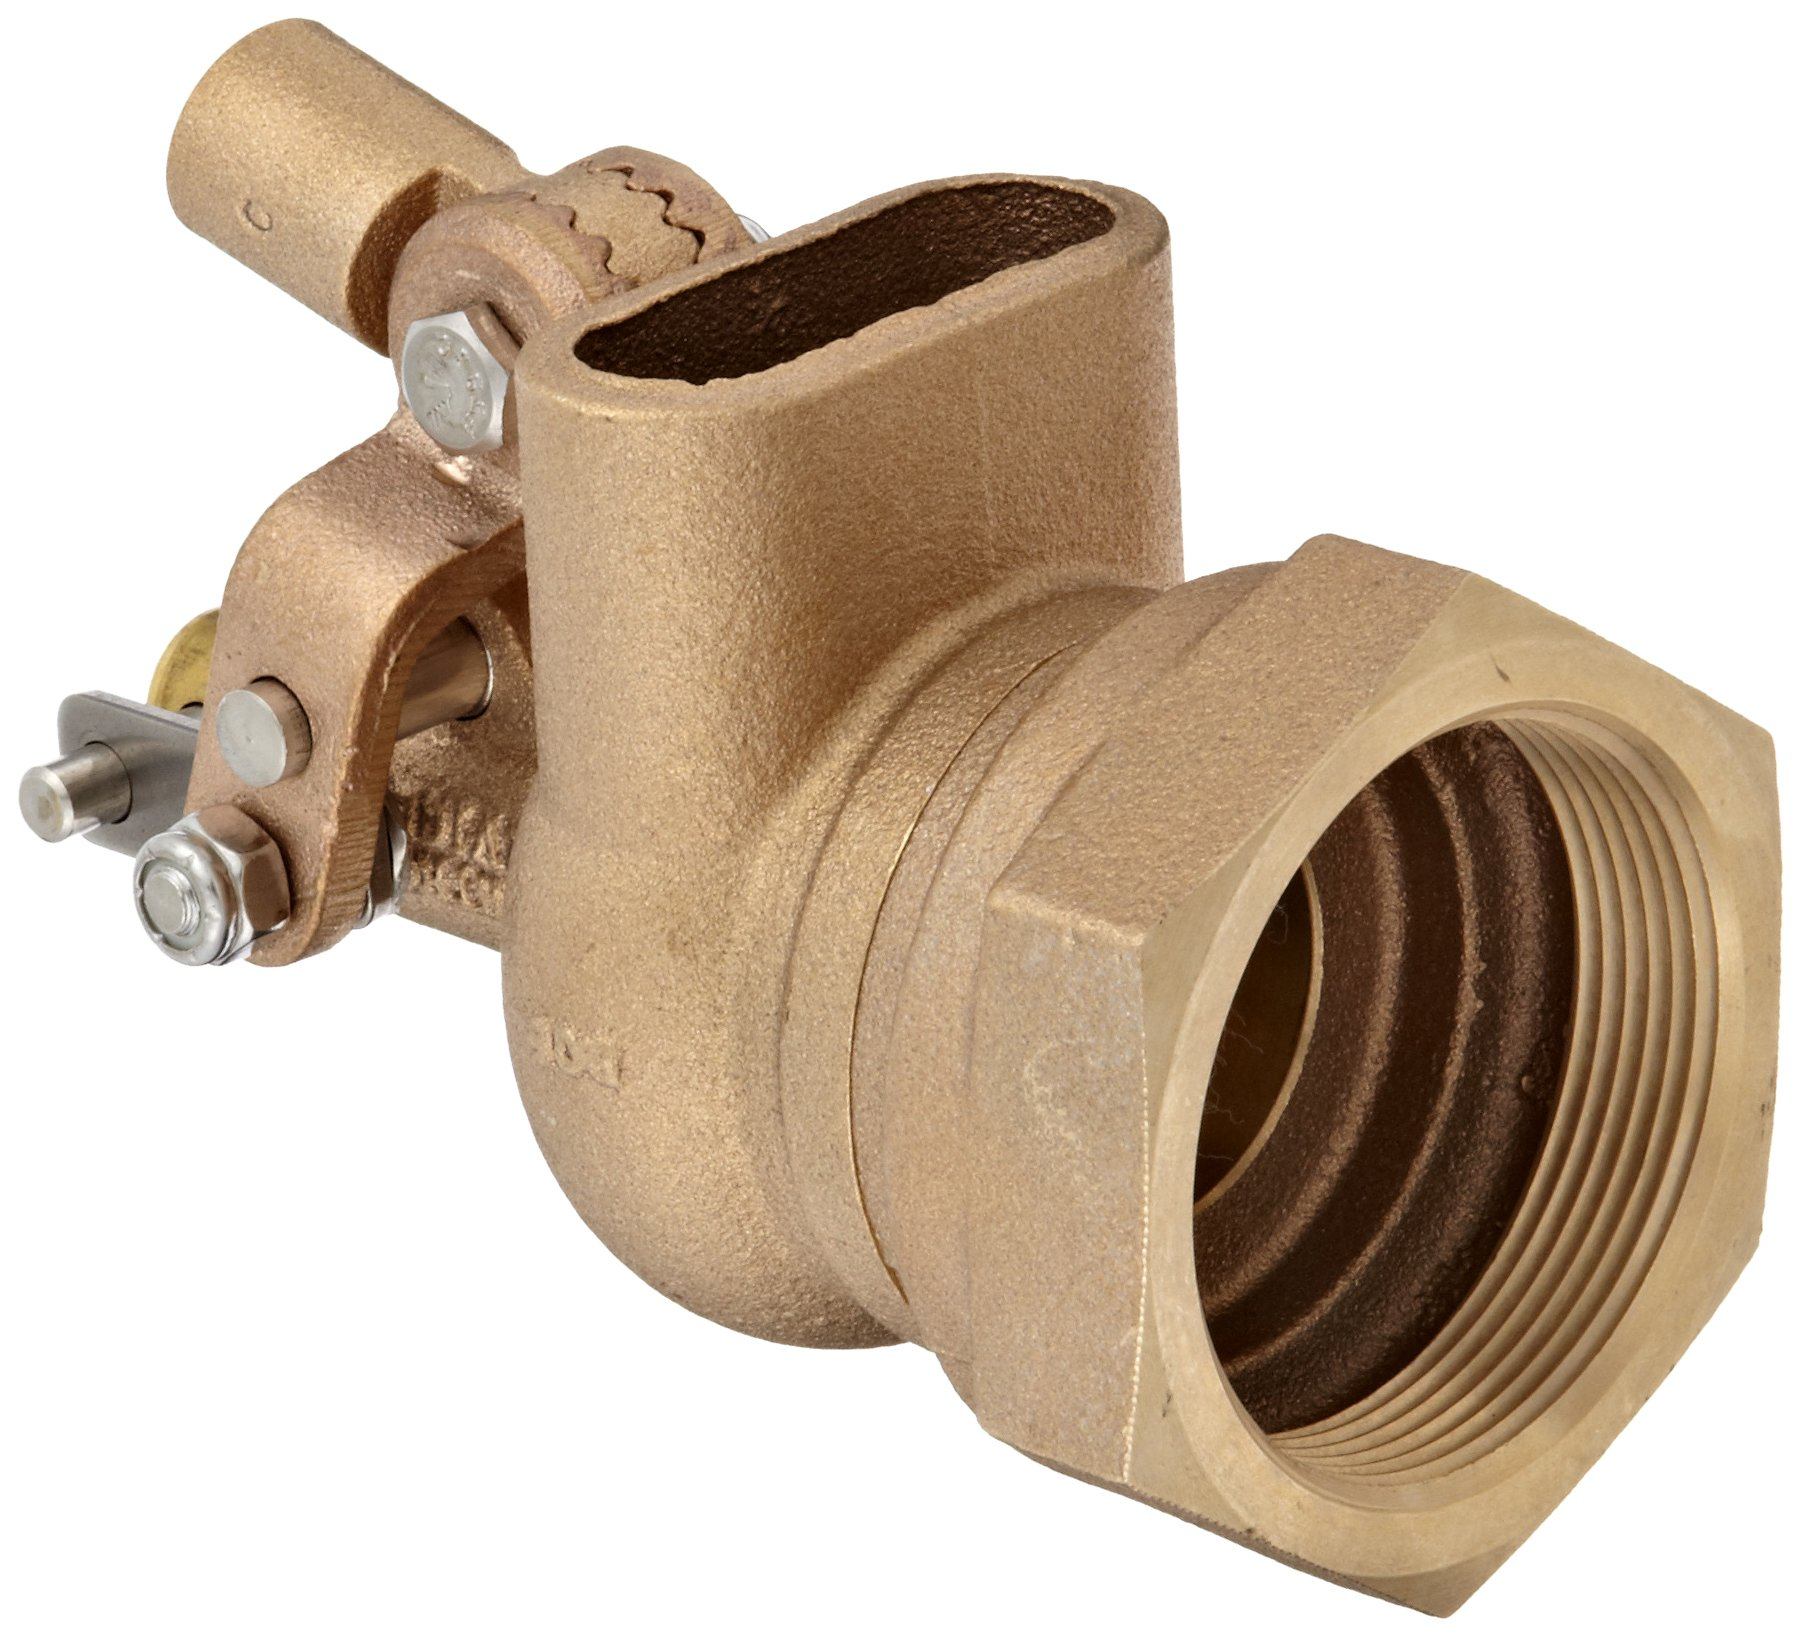 Robert Manufacturing R605T High Turbo Series Bob Red Brass Float Valve, 2'' NPT Female Inlet x FreeFlow Outlet, 180 gpm at 85 psi Pressure